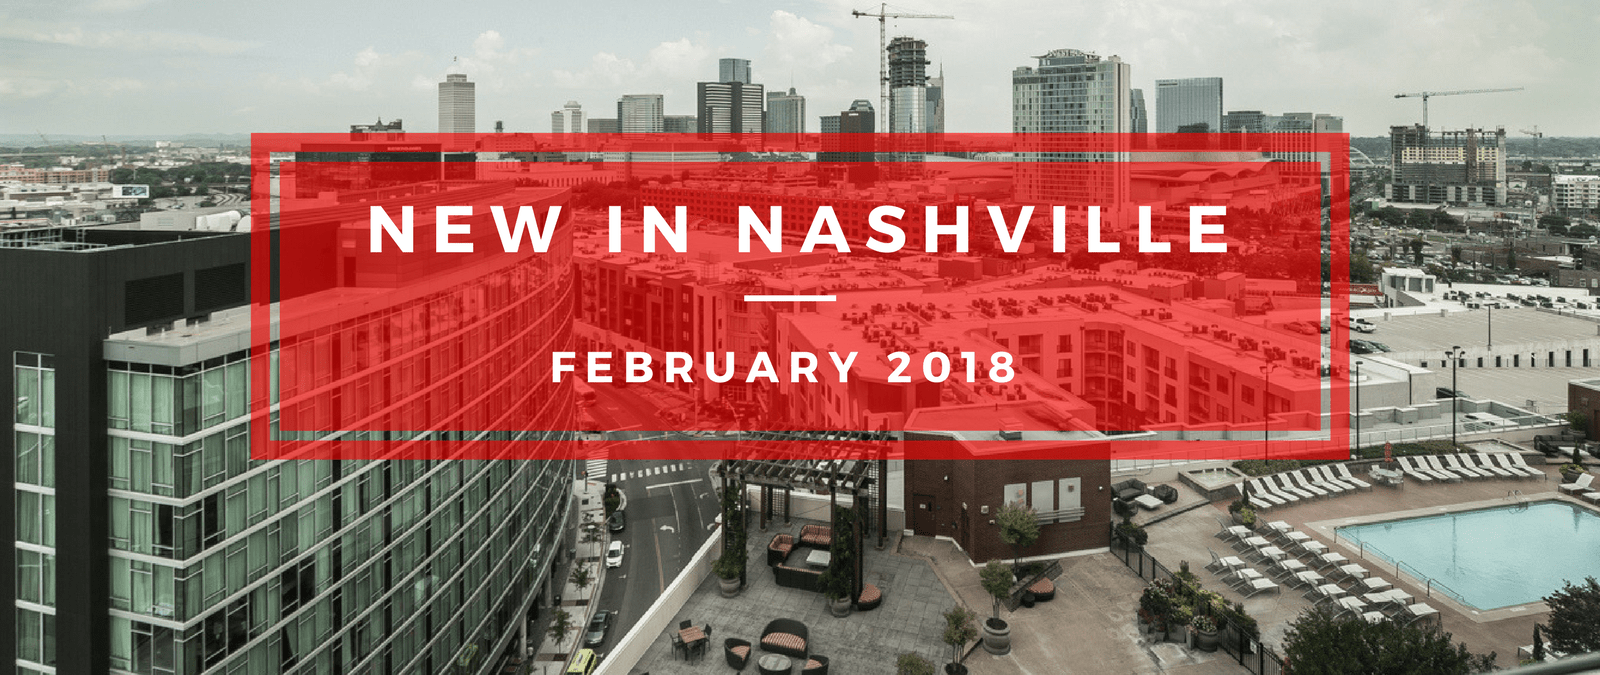 NEW IN NASHVILLE FEB 2018